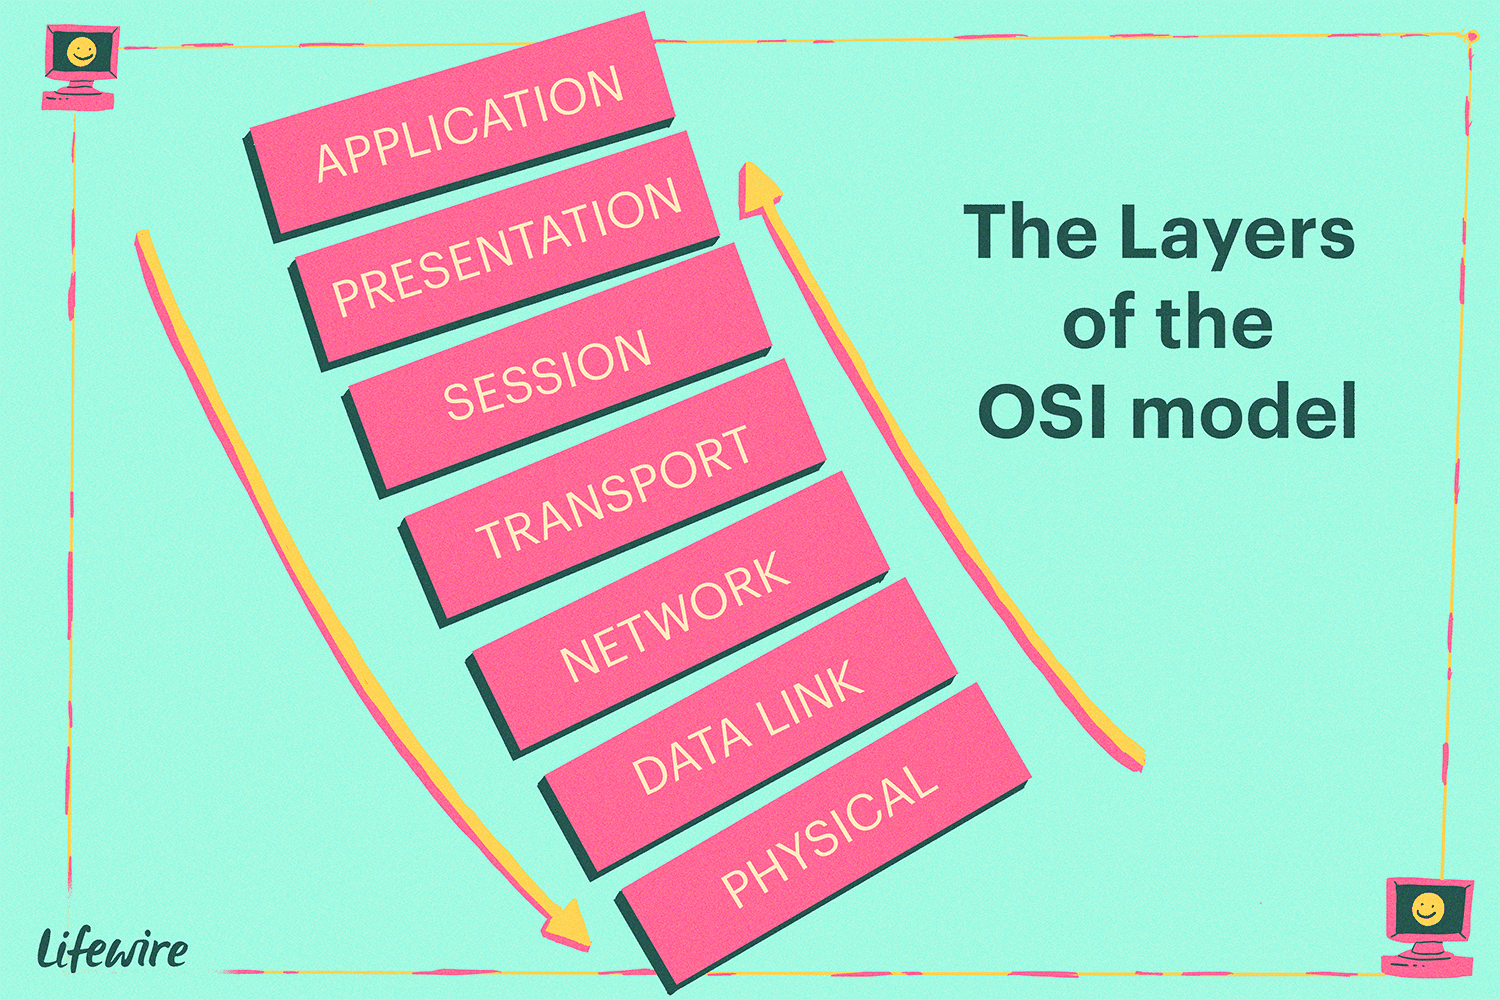 Illustration of the Layers of the OSI model